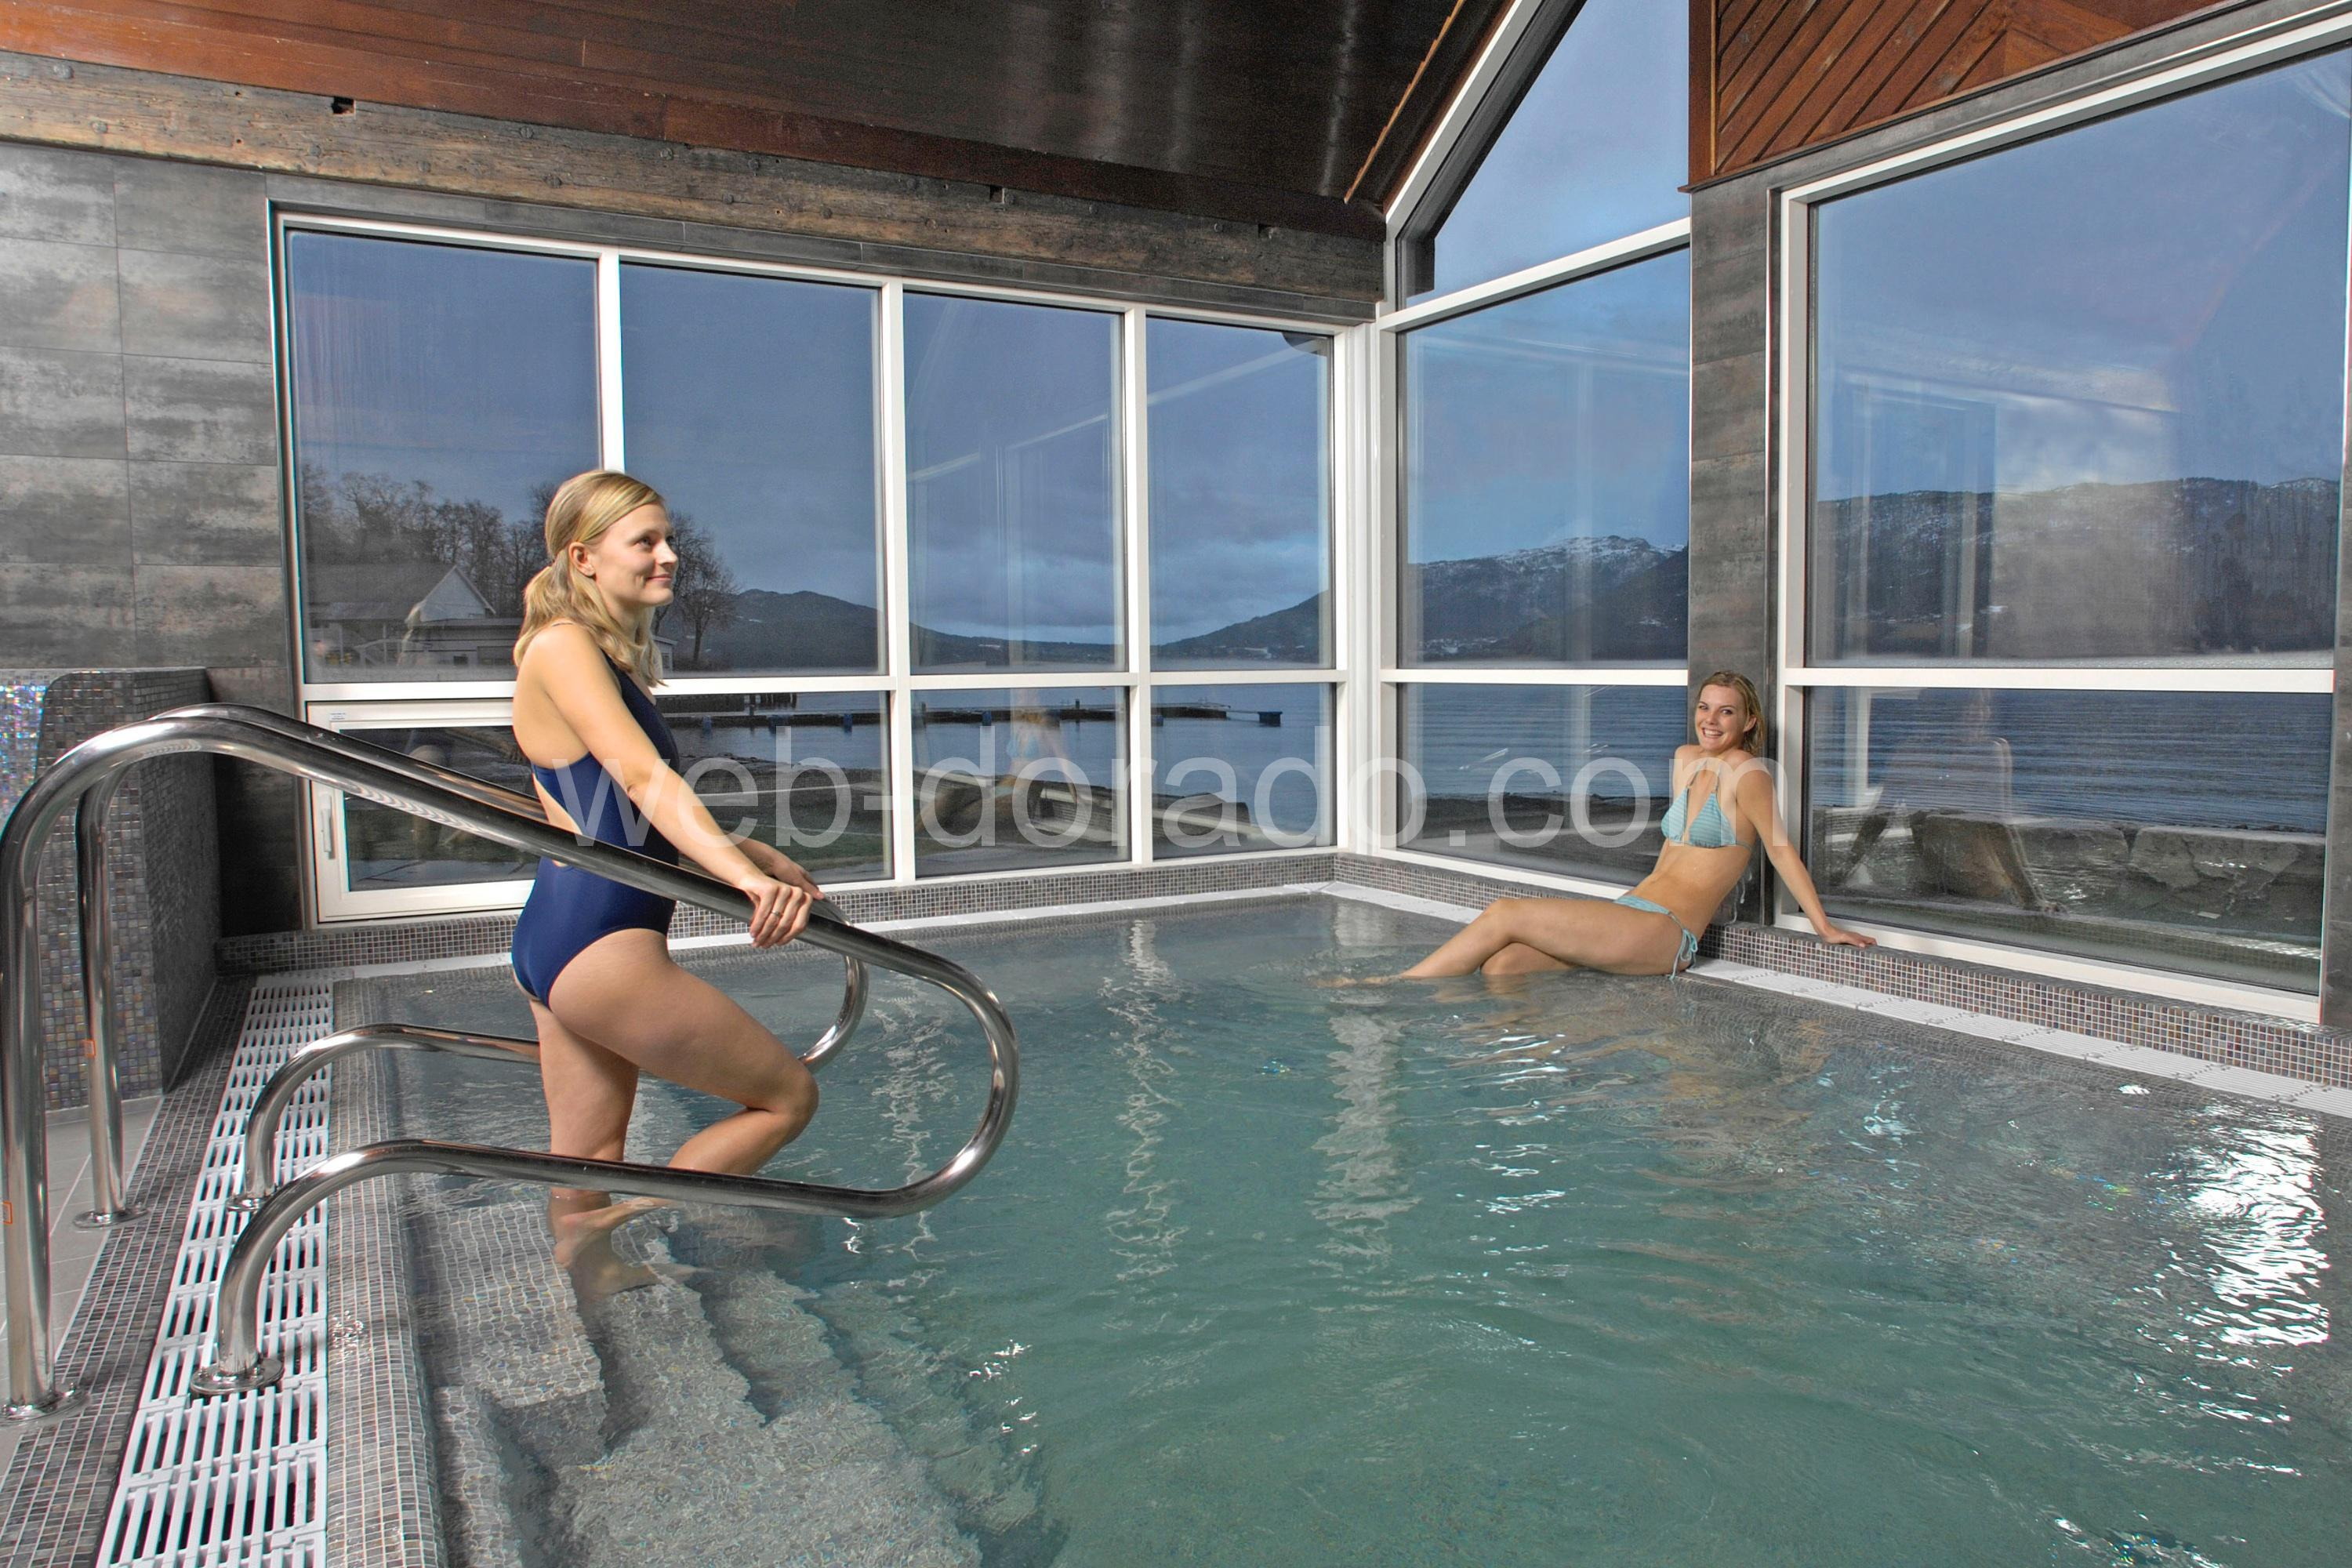 Fjord Spa - Great Bath & Spa Hotels in the Fjords of Norway